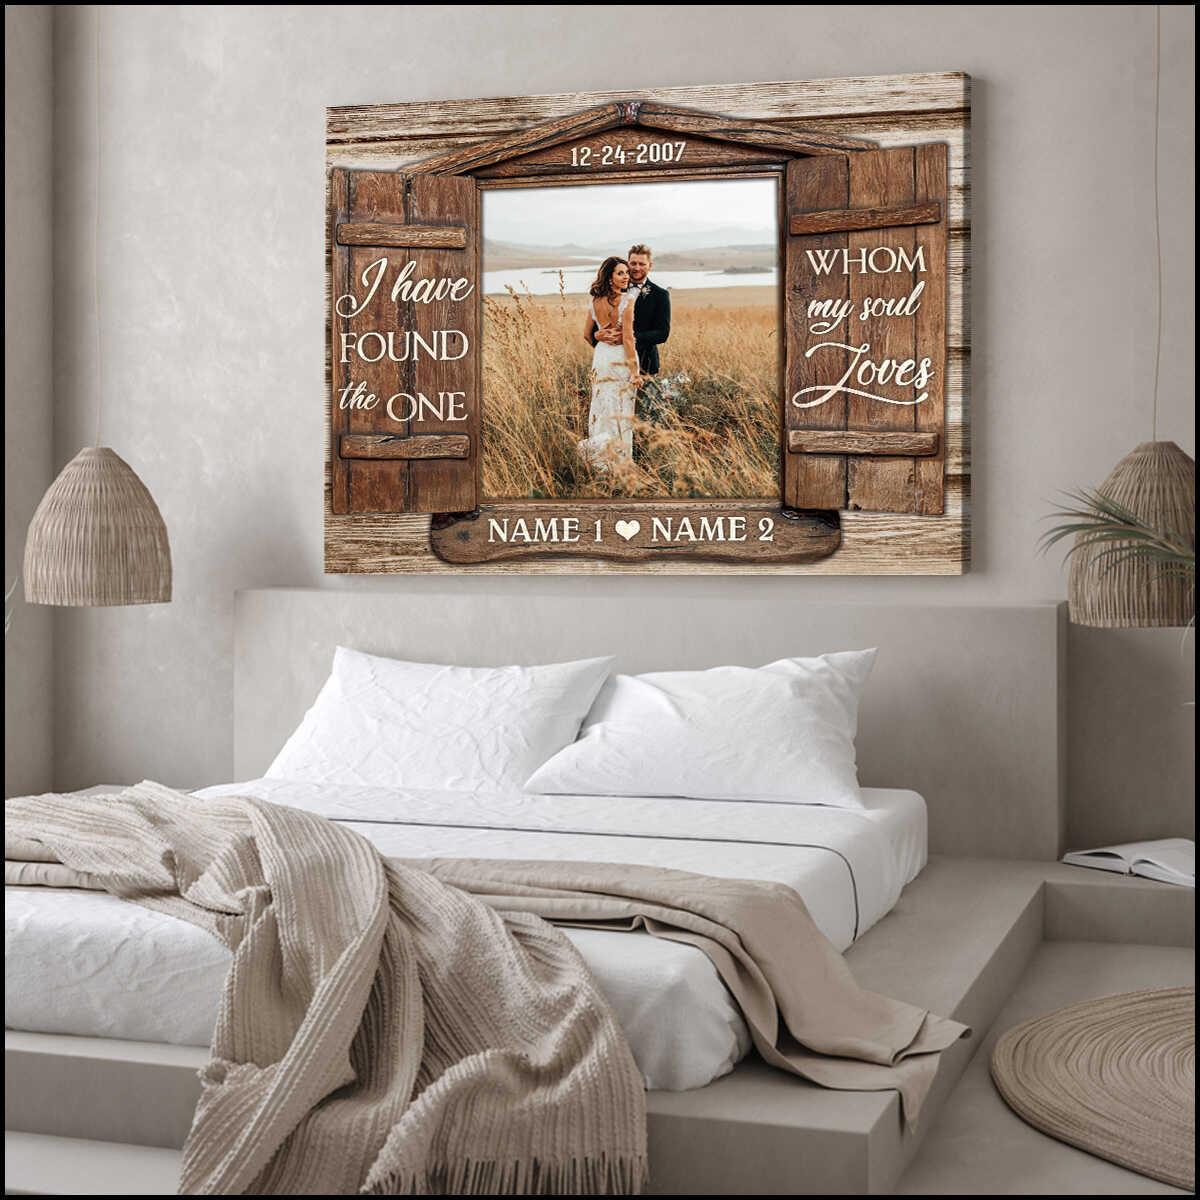 Custom Canvas Prints Personalized Gifts Wedding Anniversary Gifts Photo Gifts Window I Have Found The One Wall Art Decor Ohcanvas